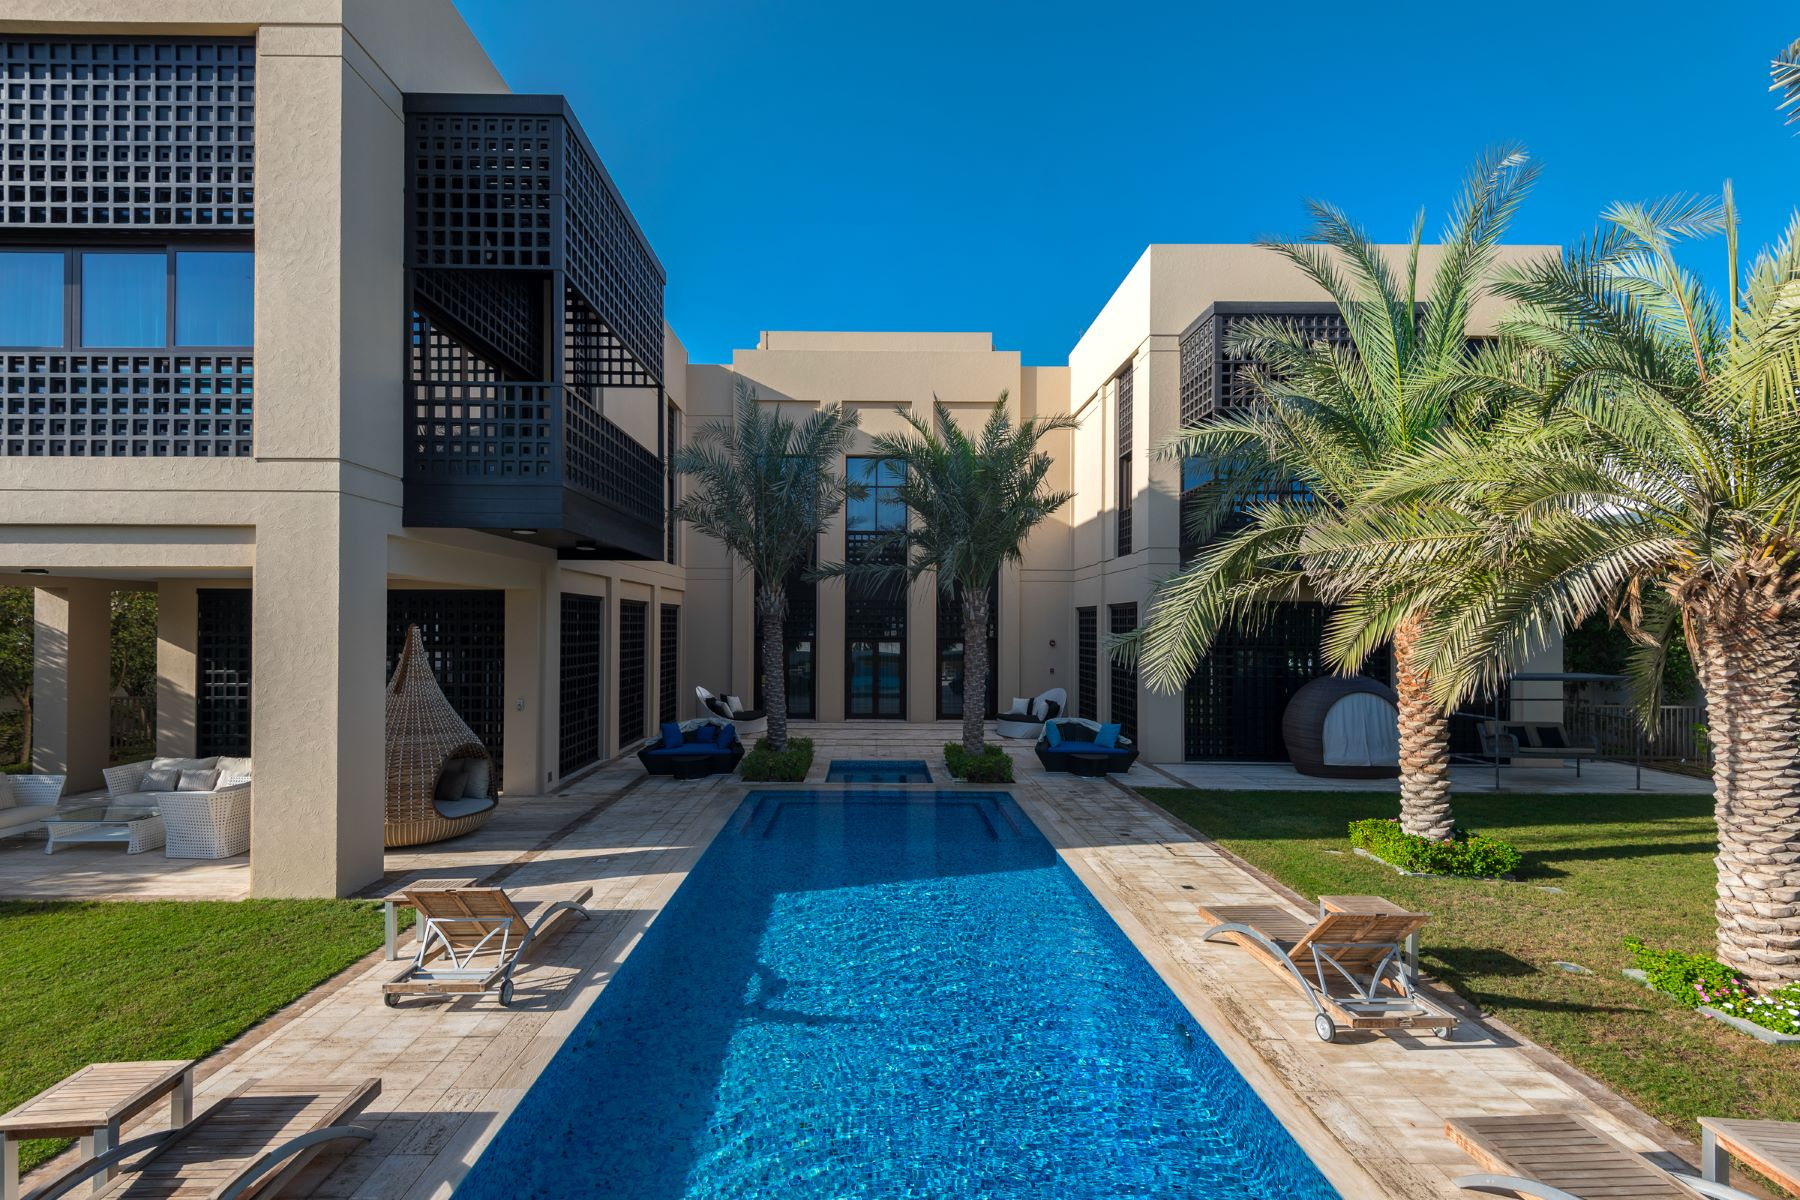 Single Family Home for Sale at Modern Arabic Mansion on the Crystal Lagoon Dubai, United Arab Emirates